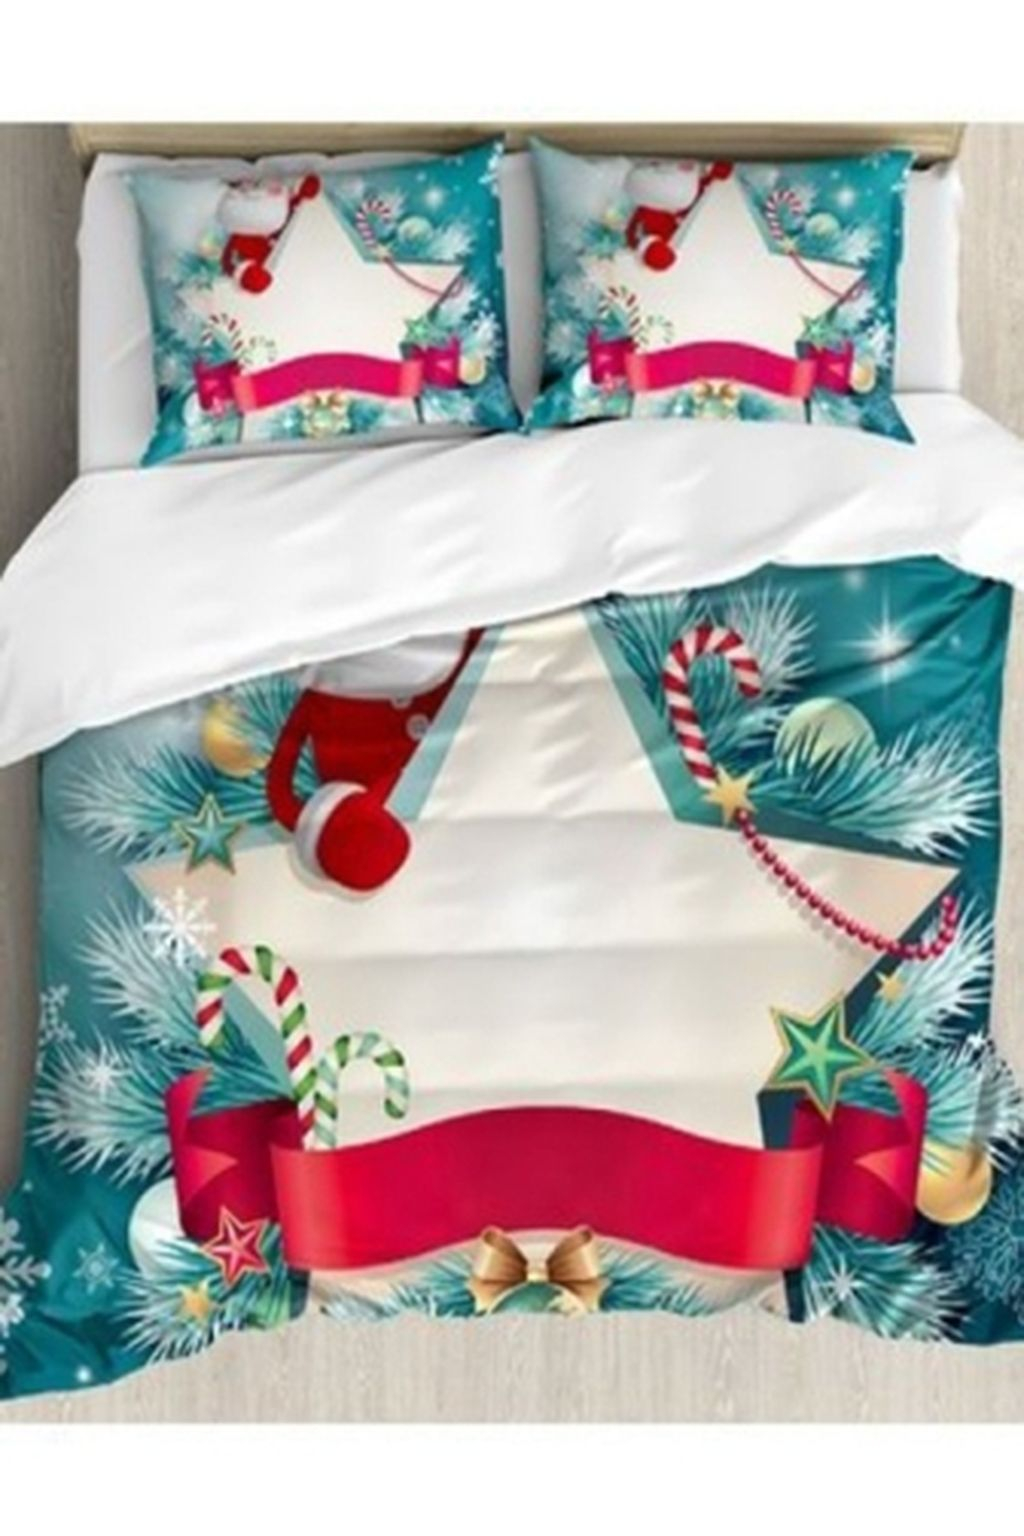 Lovely Winter Bedroom Design Ideas With Flower Themes To Try Asap 19